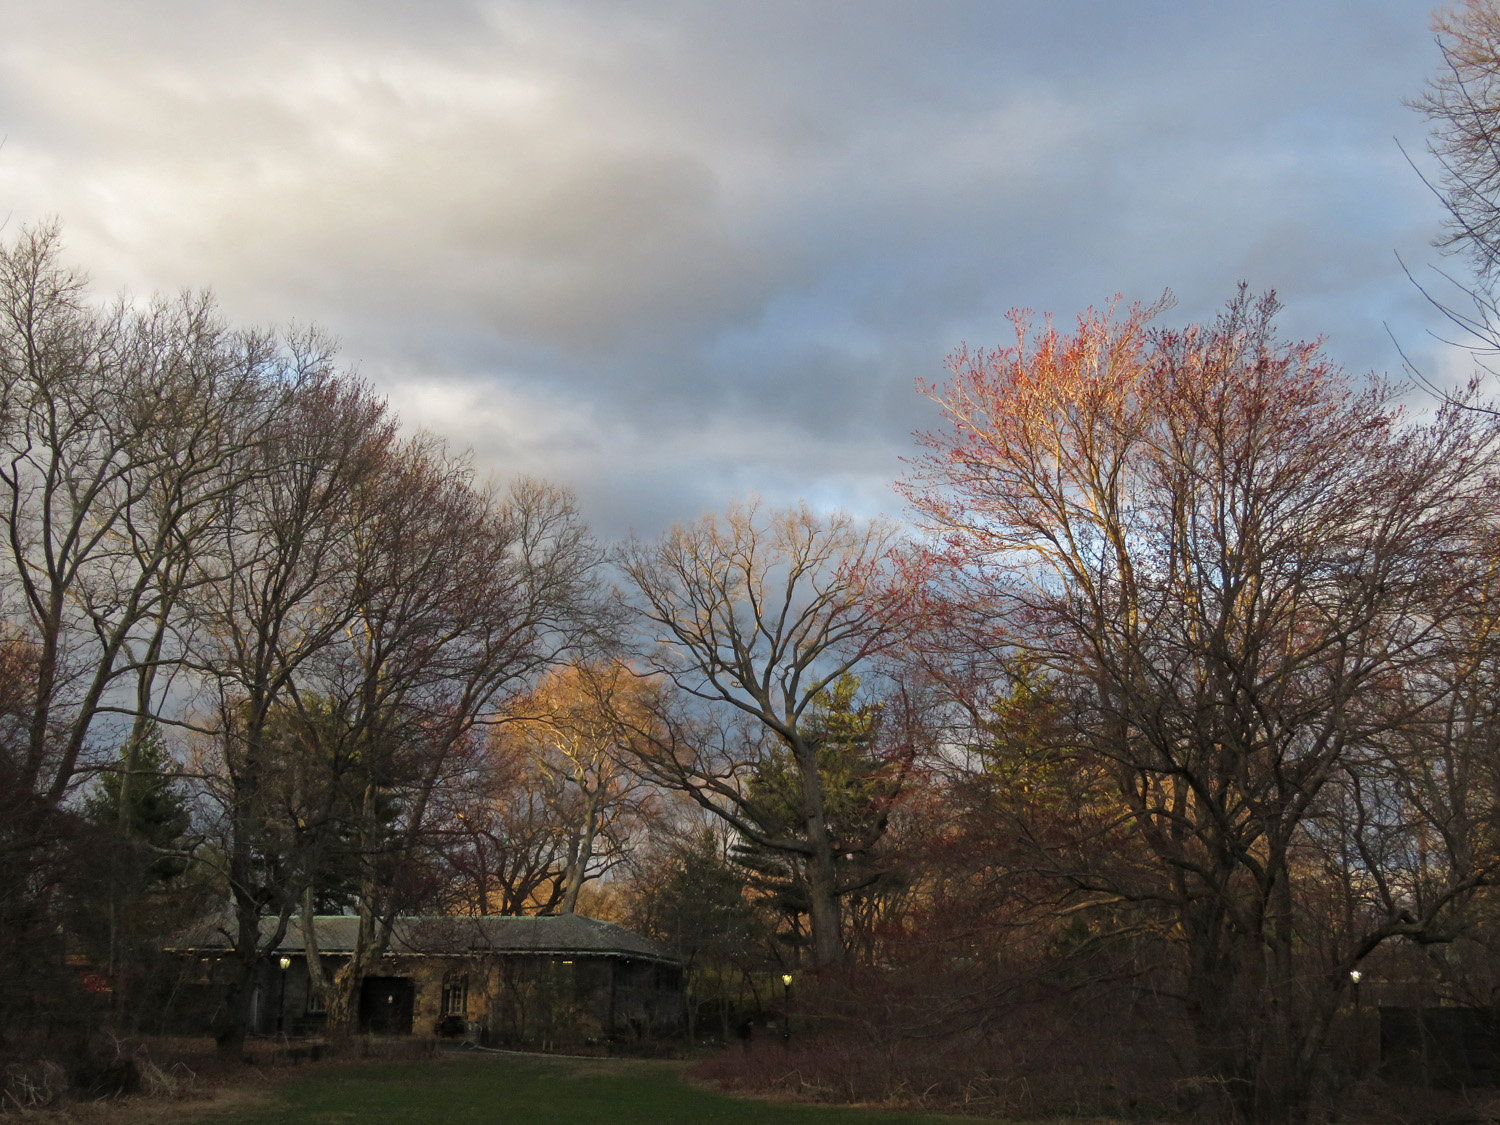 The sky over Maintenance Meadow, March 31, 2019